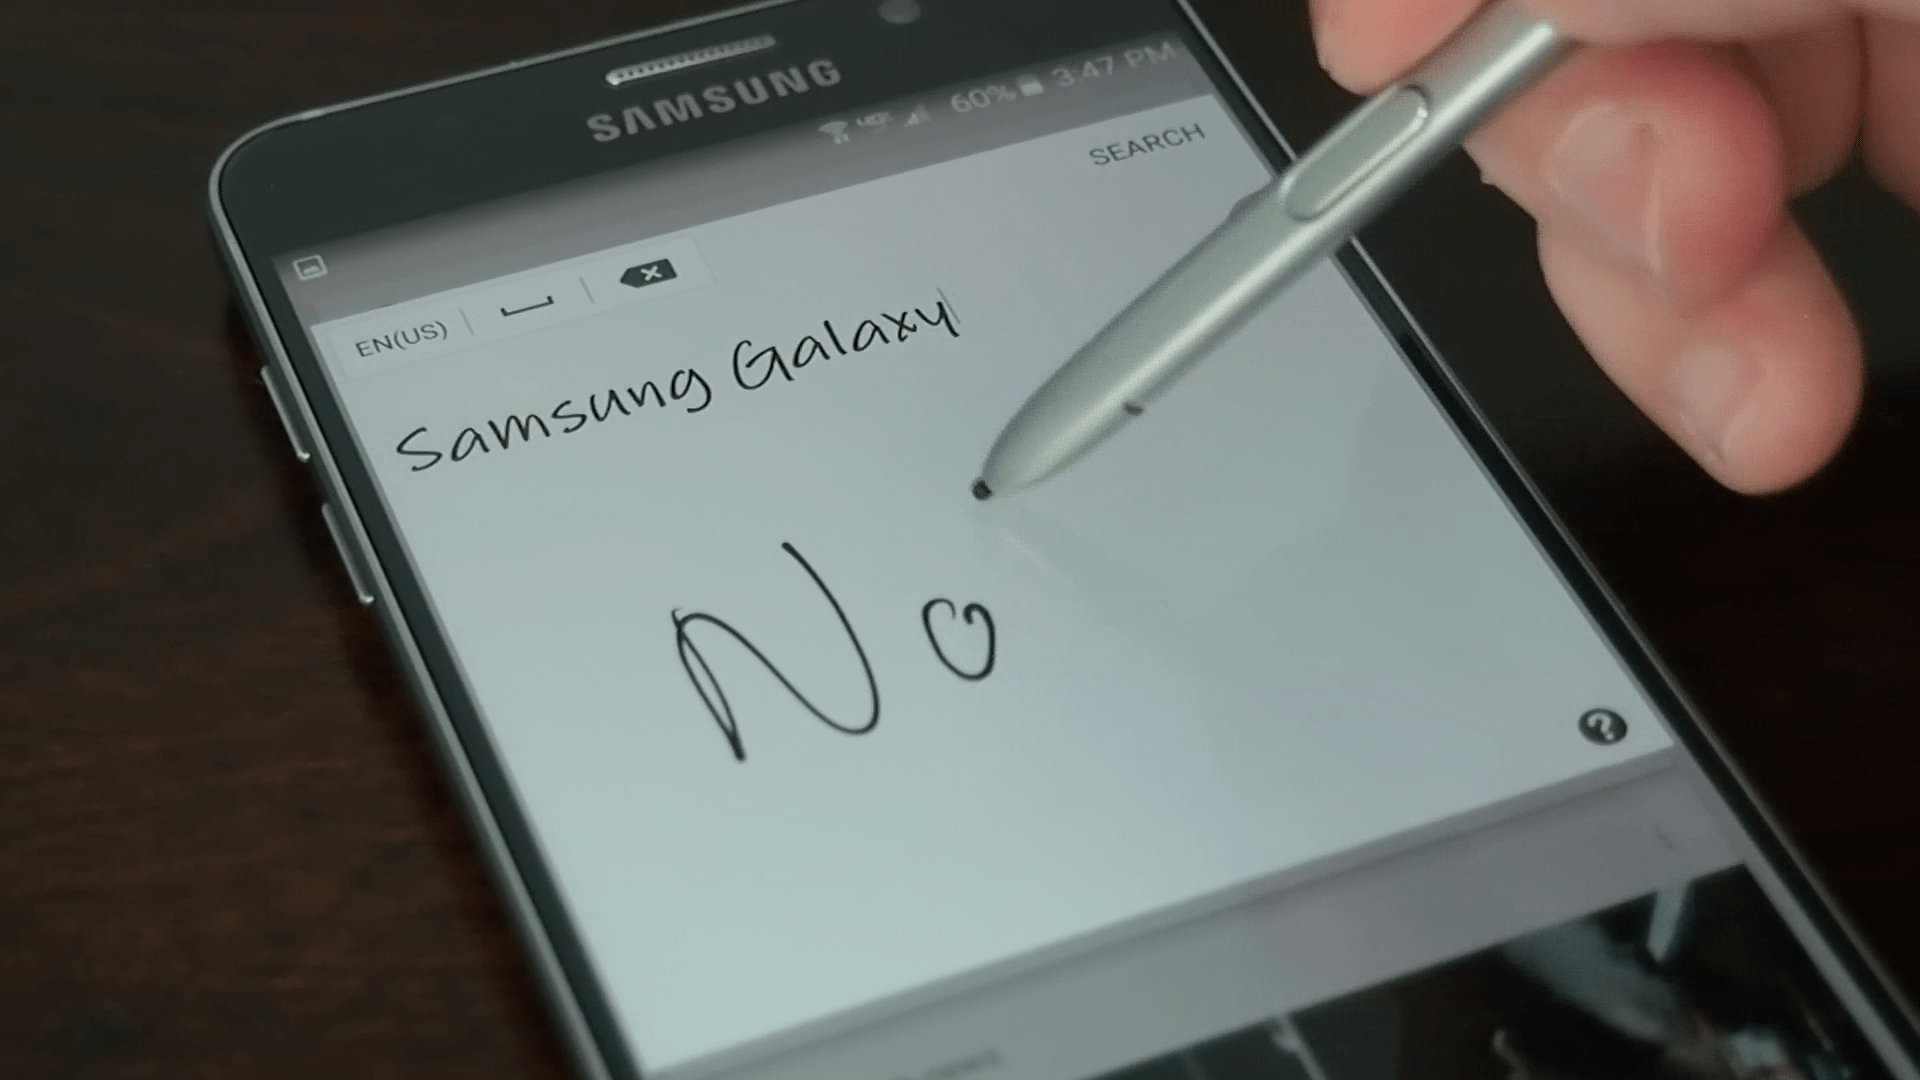 Note 5 writing